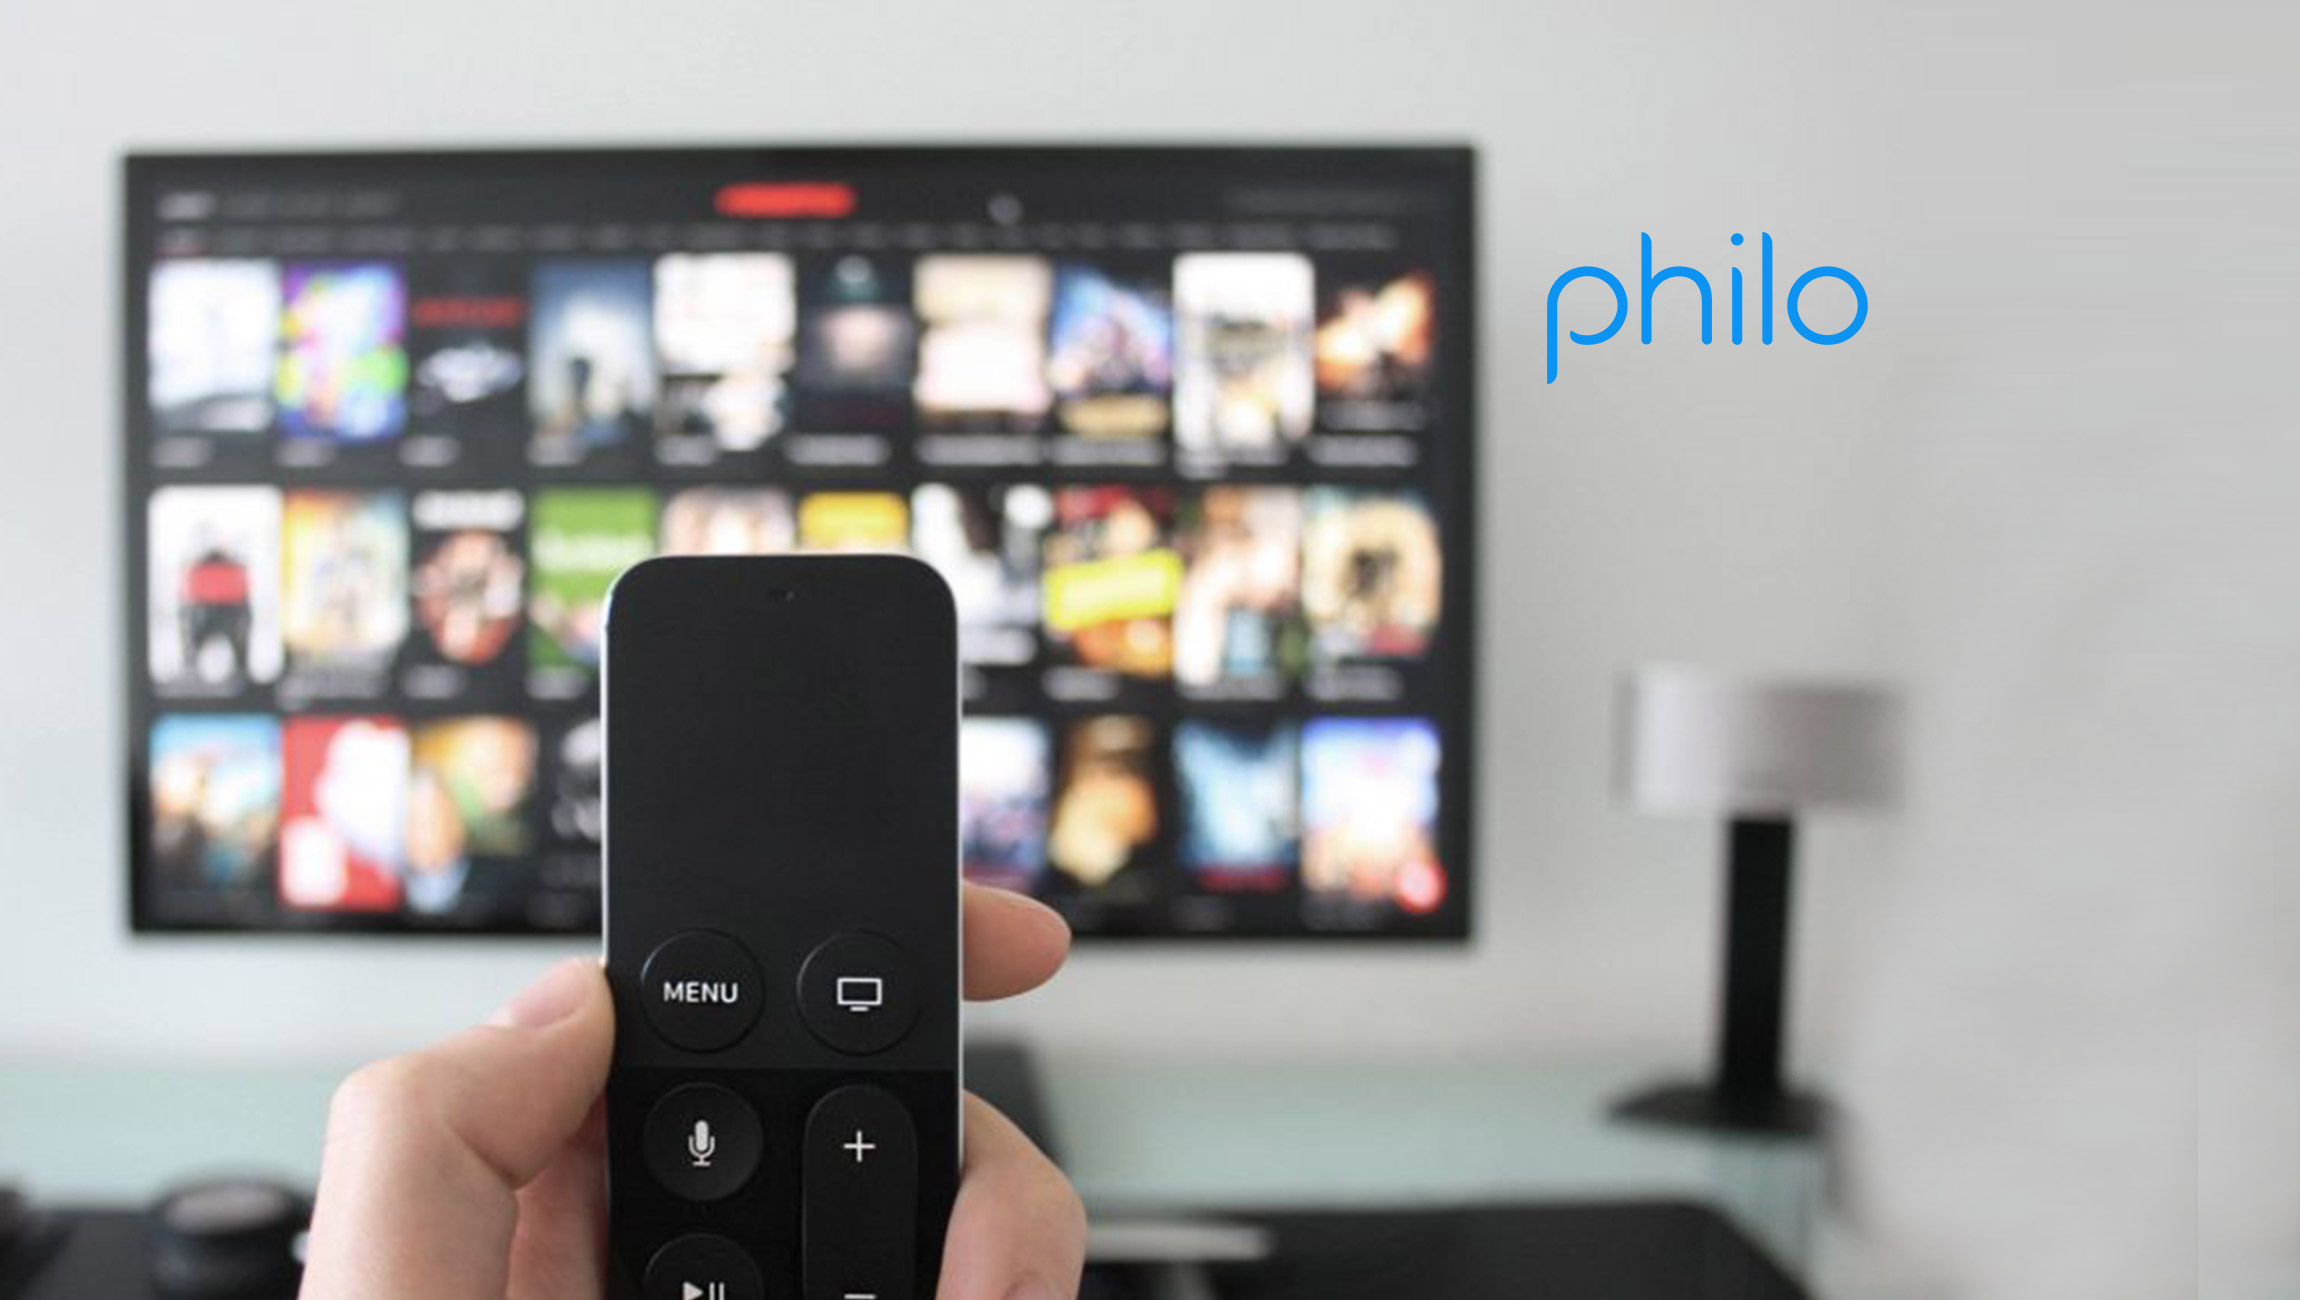 Philo Reveals Connected TV Ad Platform to Reach Latest Generation of TV Lovers